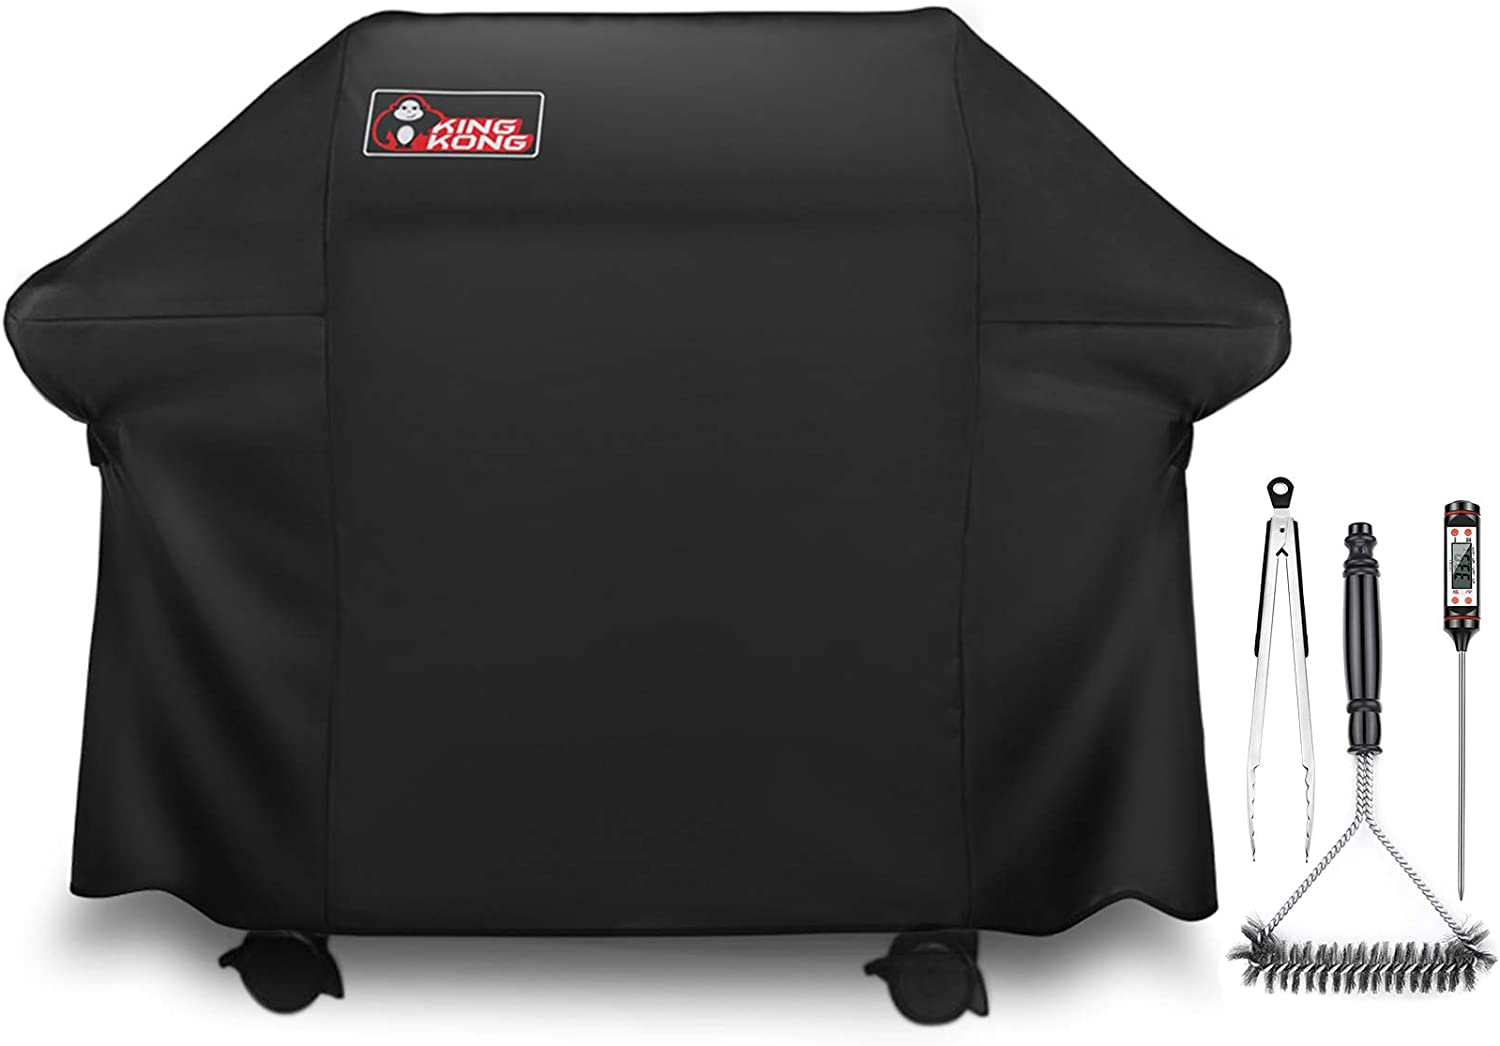 Kingkong Gas Grill Cover 7553 7107 Genesis New Orleans Mall New mail order a for E Weber